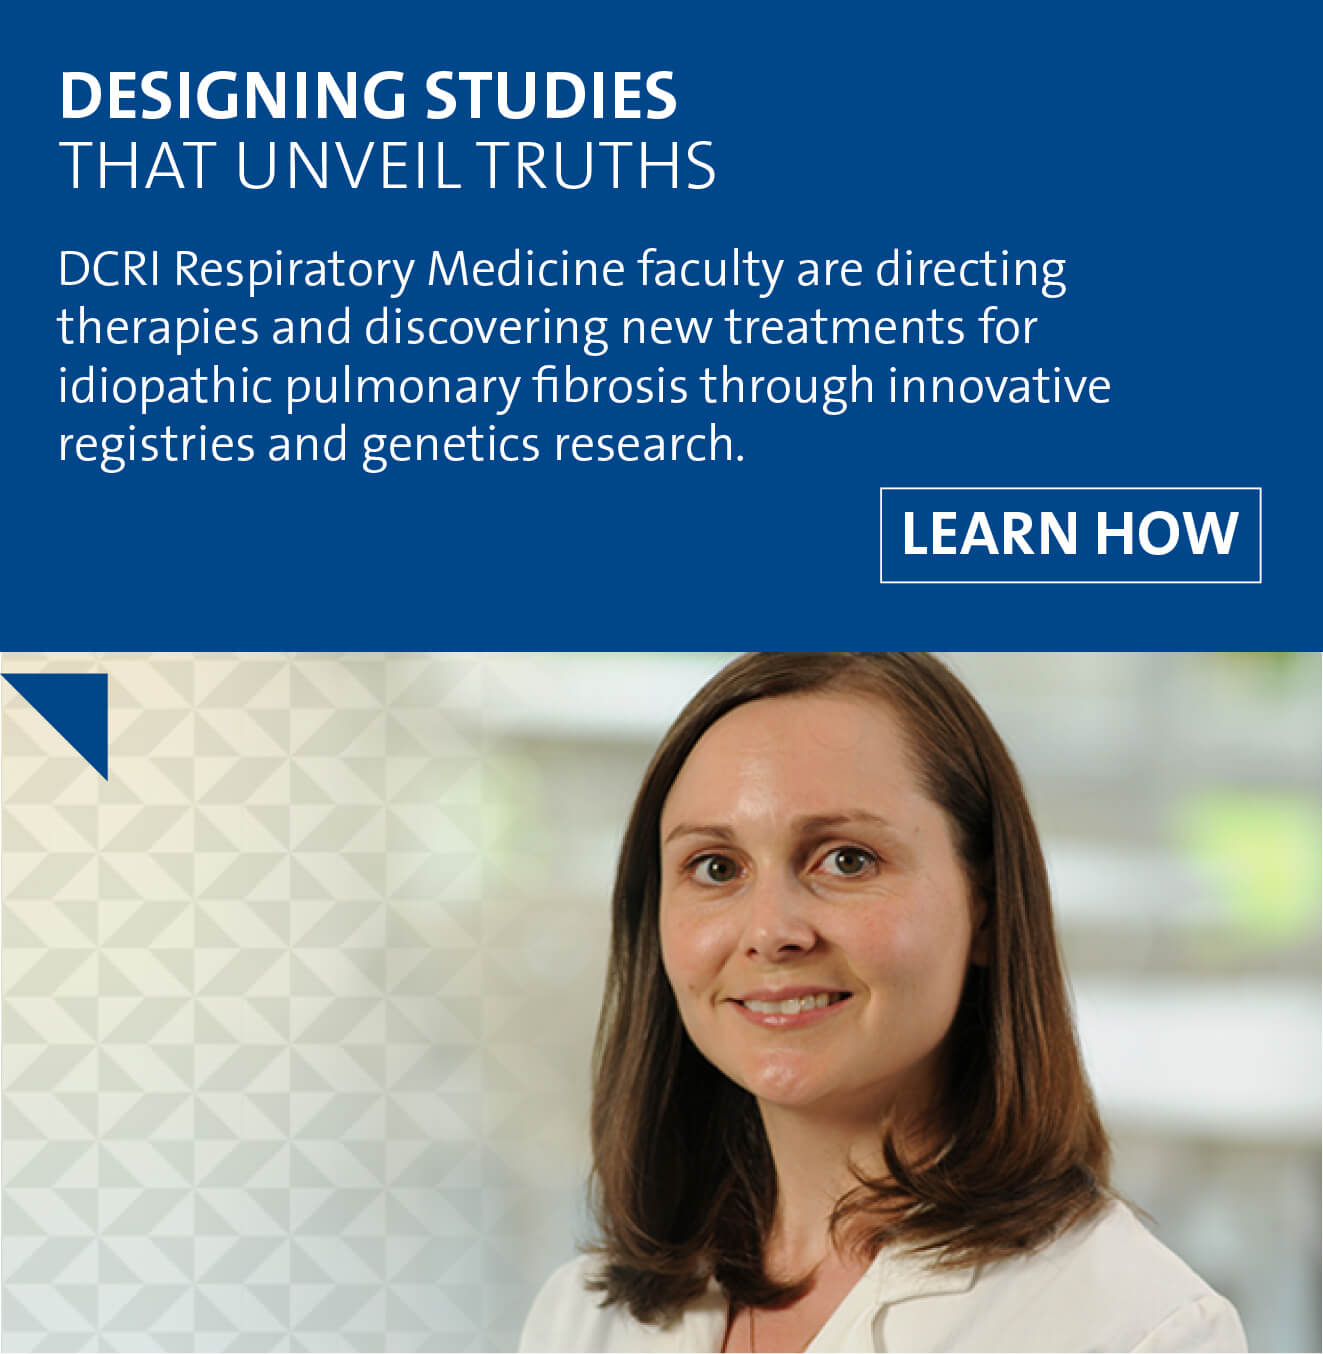 Designing Studies That Unveil Truths. DCRI Respiratory medicine faculty are directing therapies and discovering new treatments for idiopathic pulmonary fibrosis through innovative registries and genetics research.